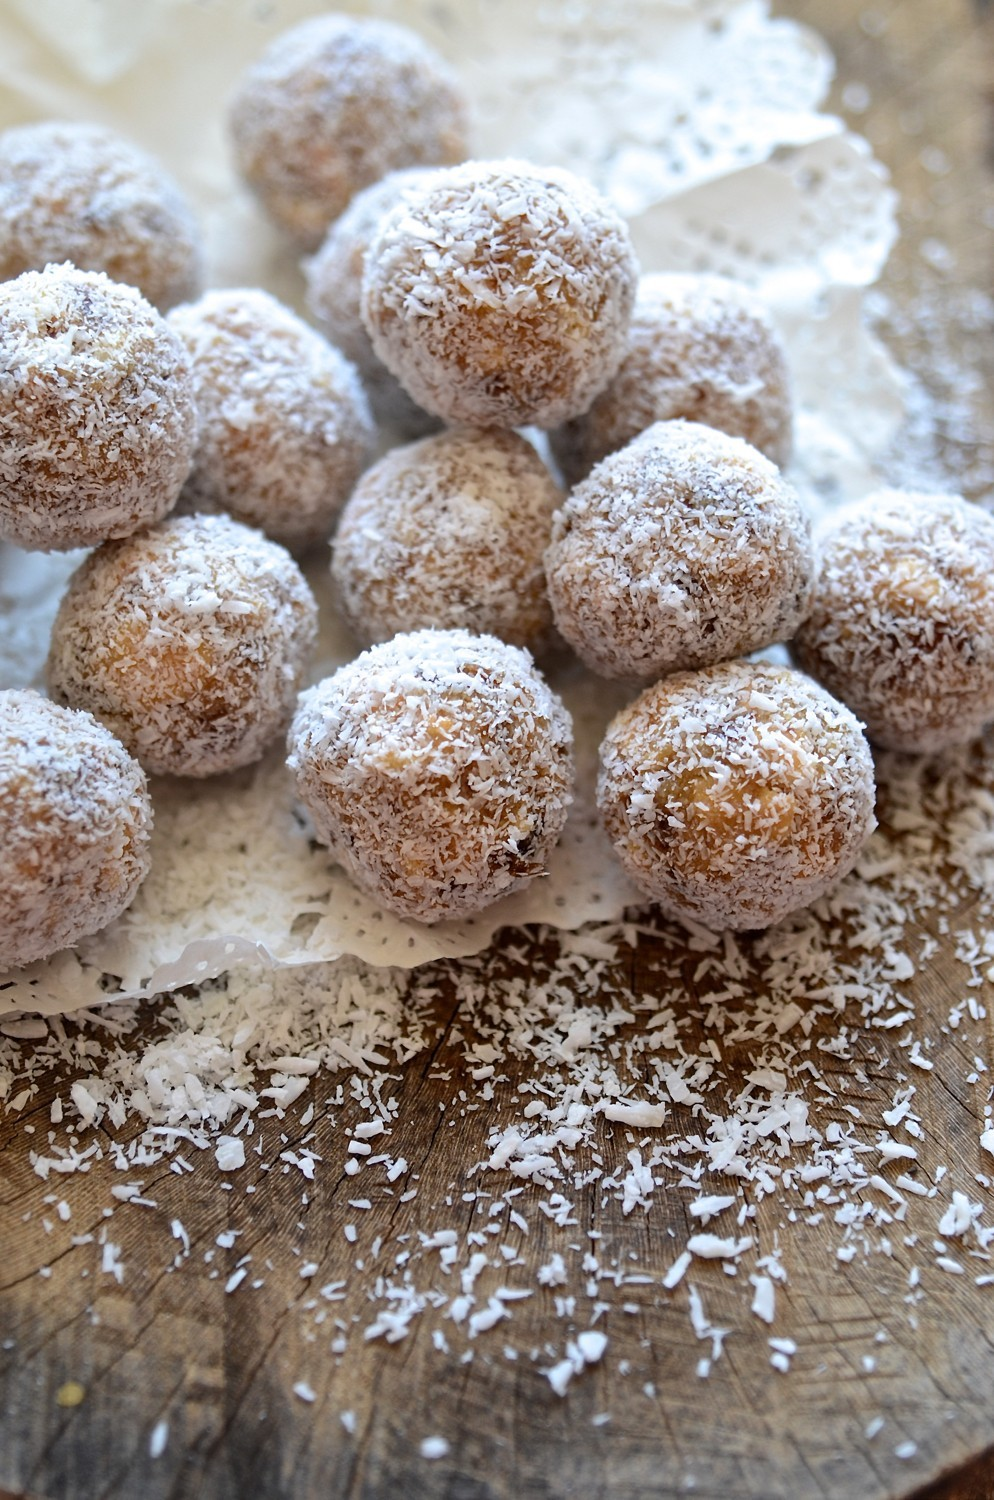 Cape Malay coconut date balls | Bibbyskitchen recipes